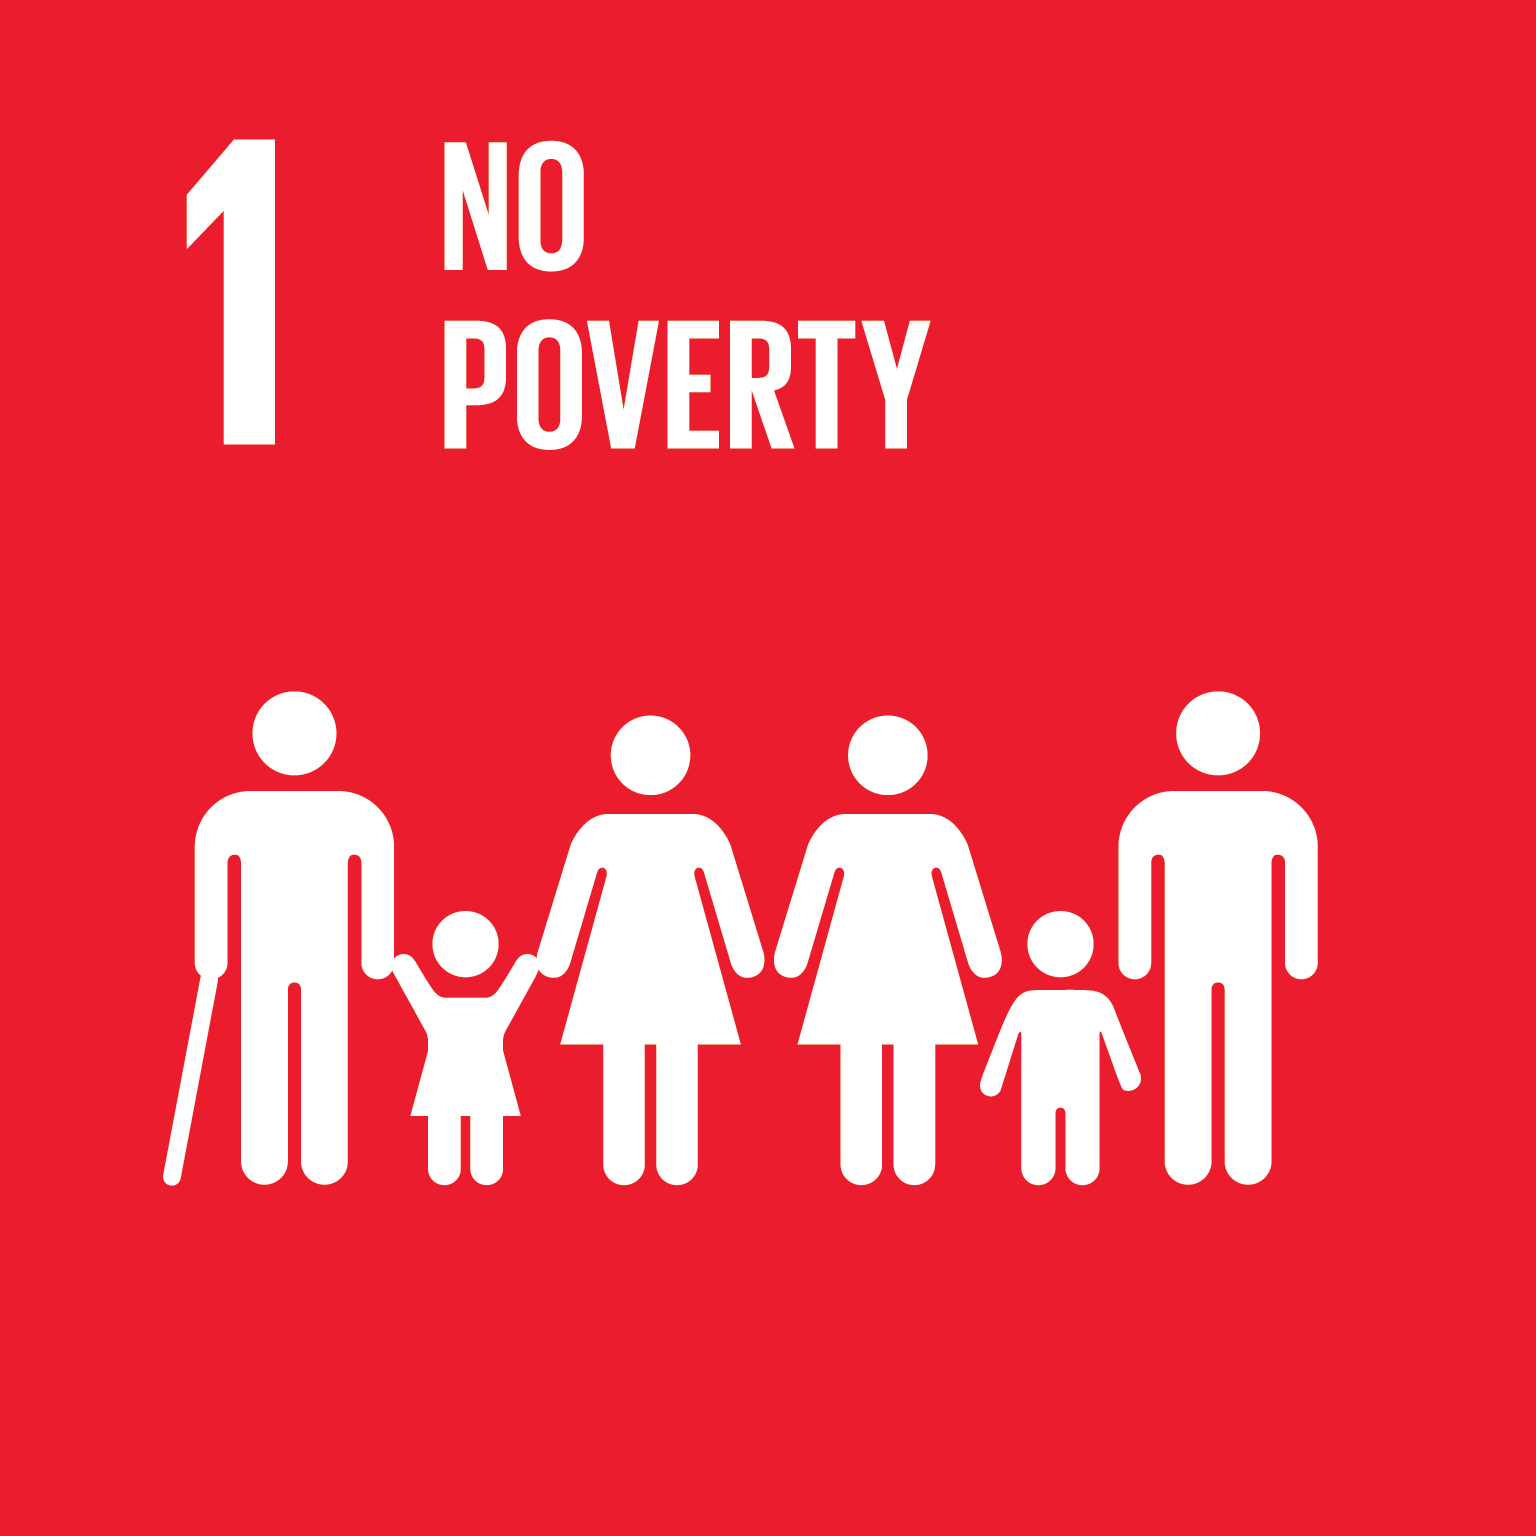 01 No poverty